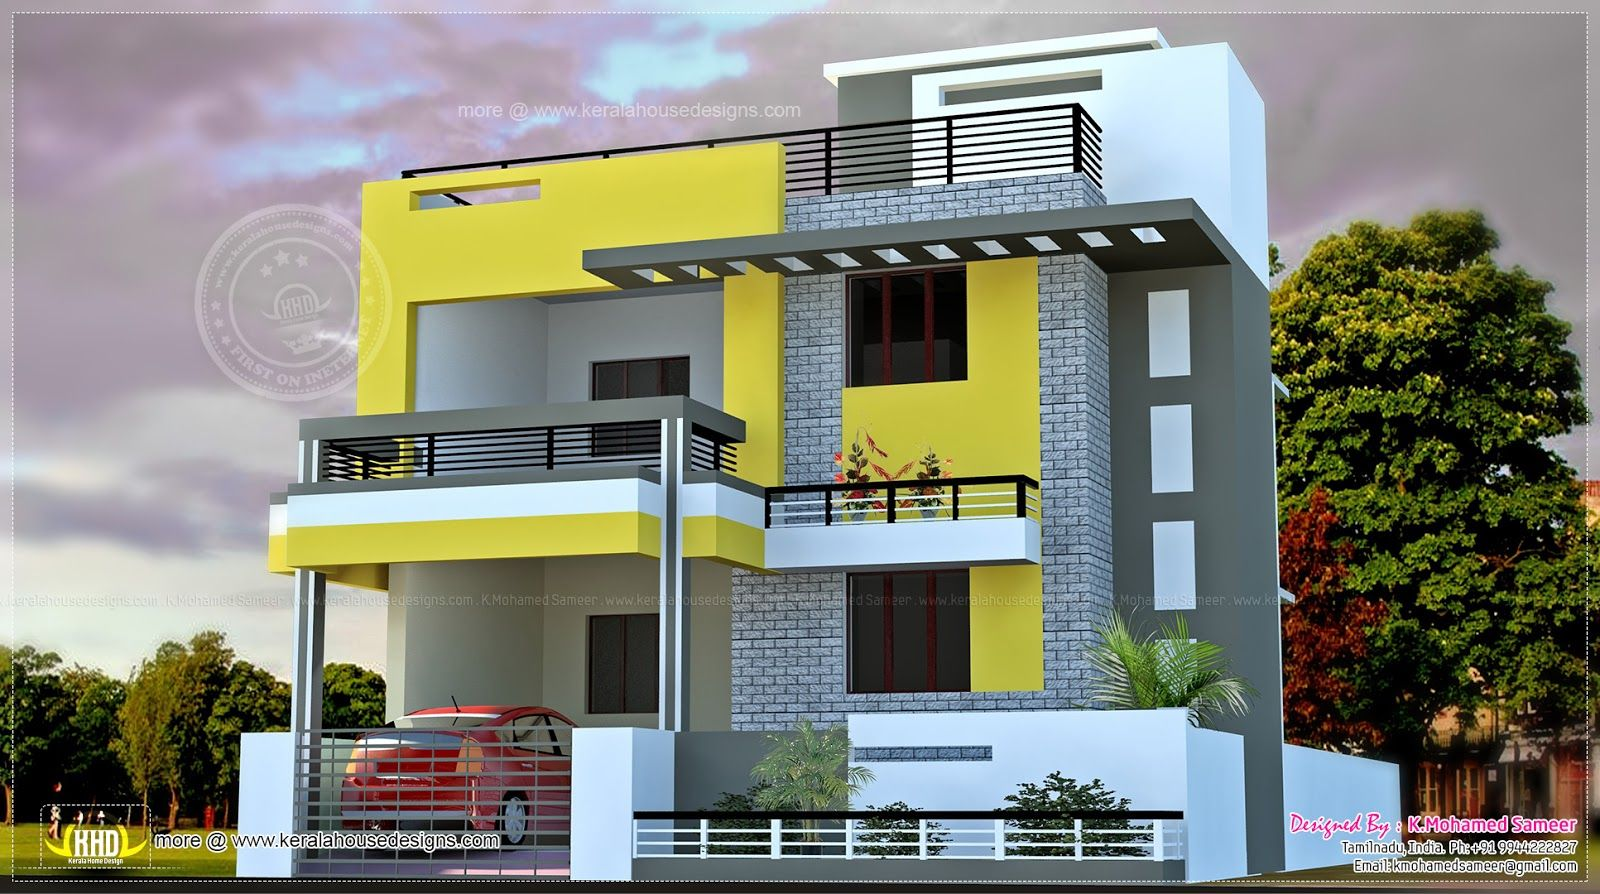 Elevations of residential buildings in indian photo for Residential house plans and designs